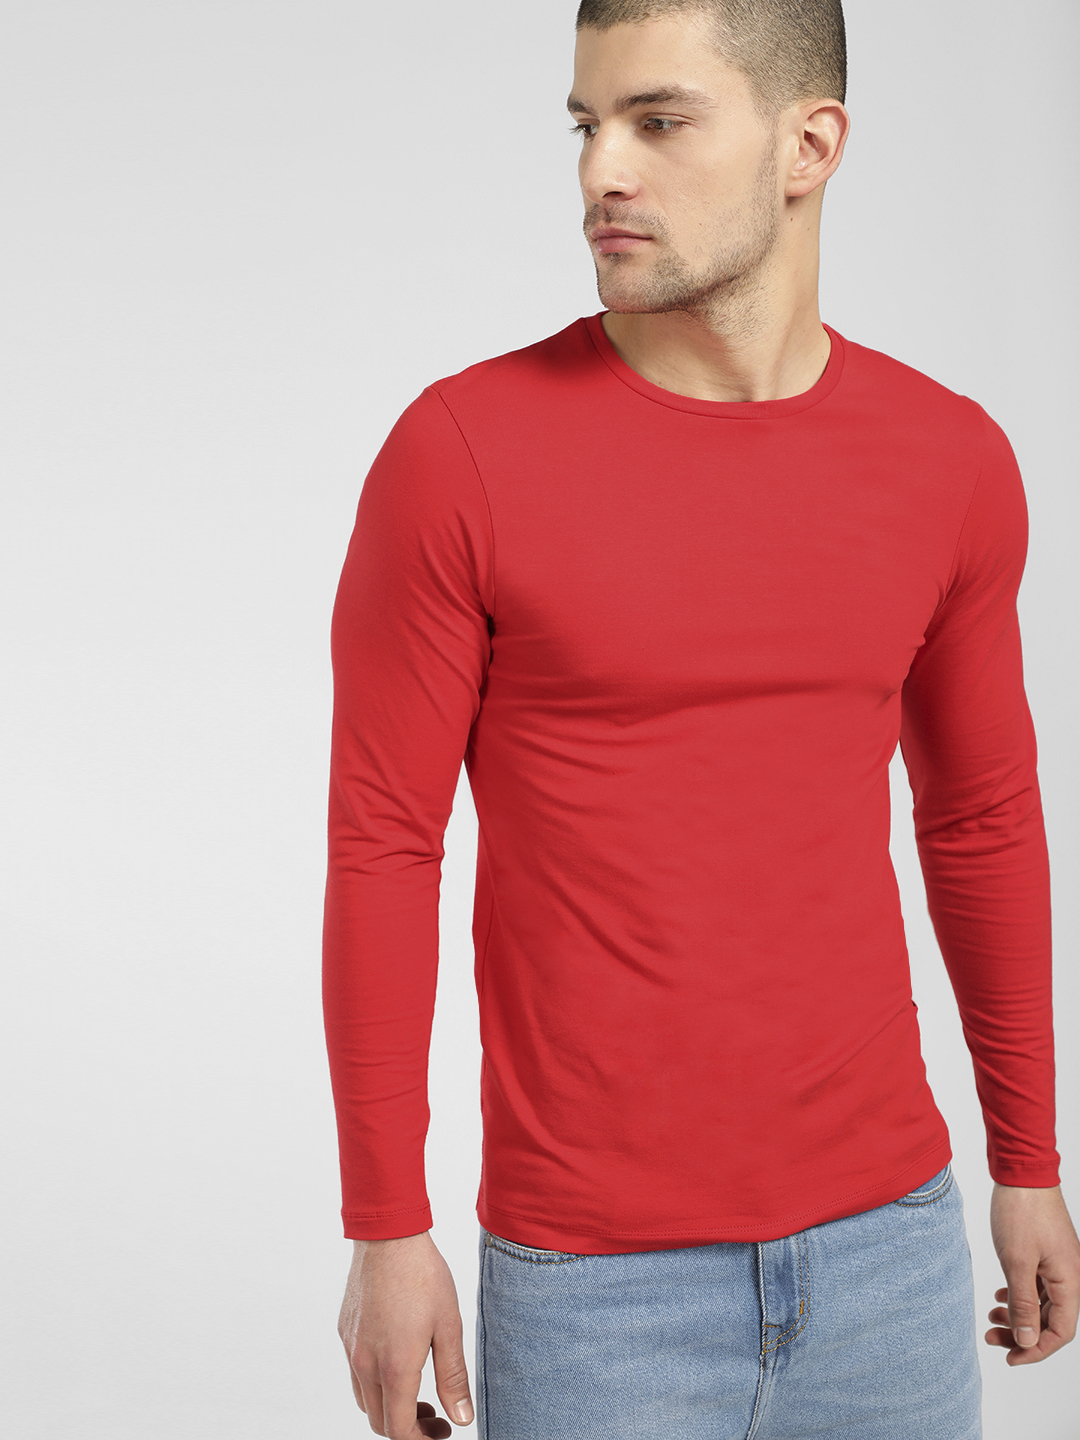 KOOVS Red Basic Muscle Fit T-Shirt 1